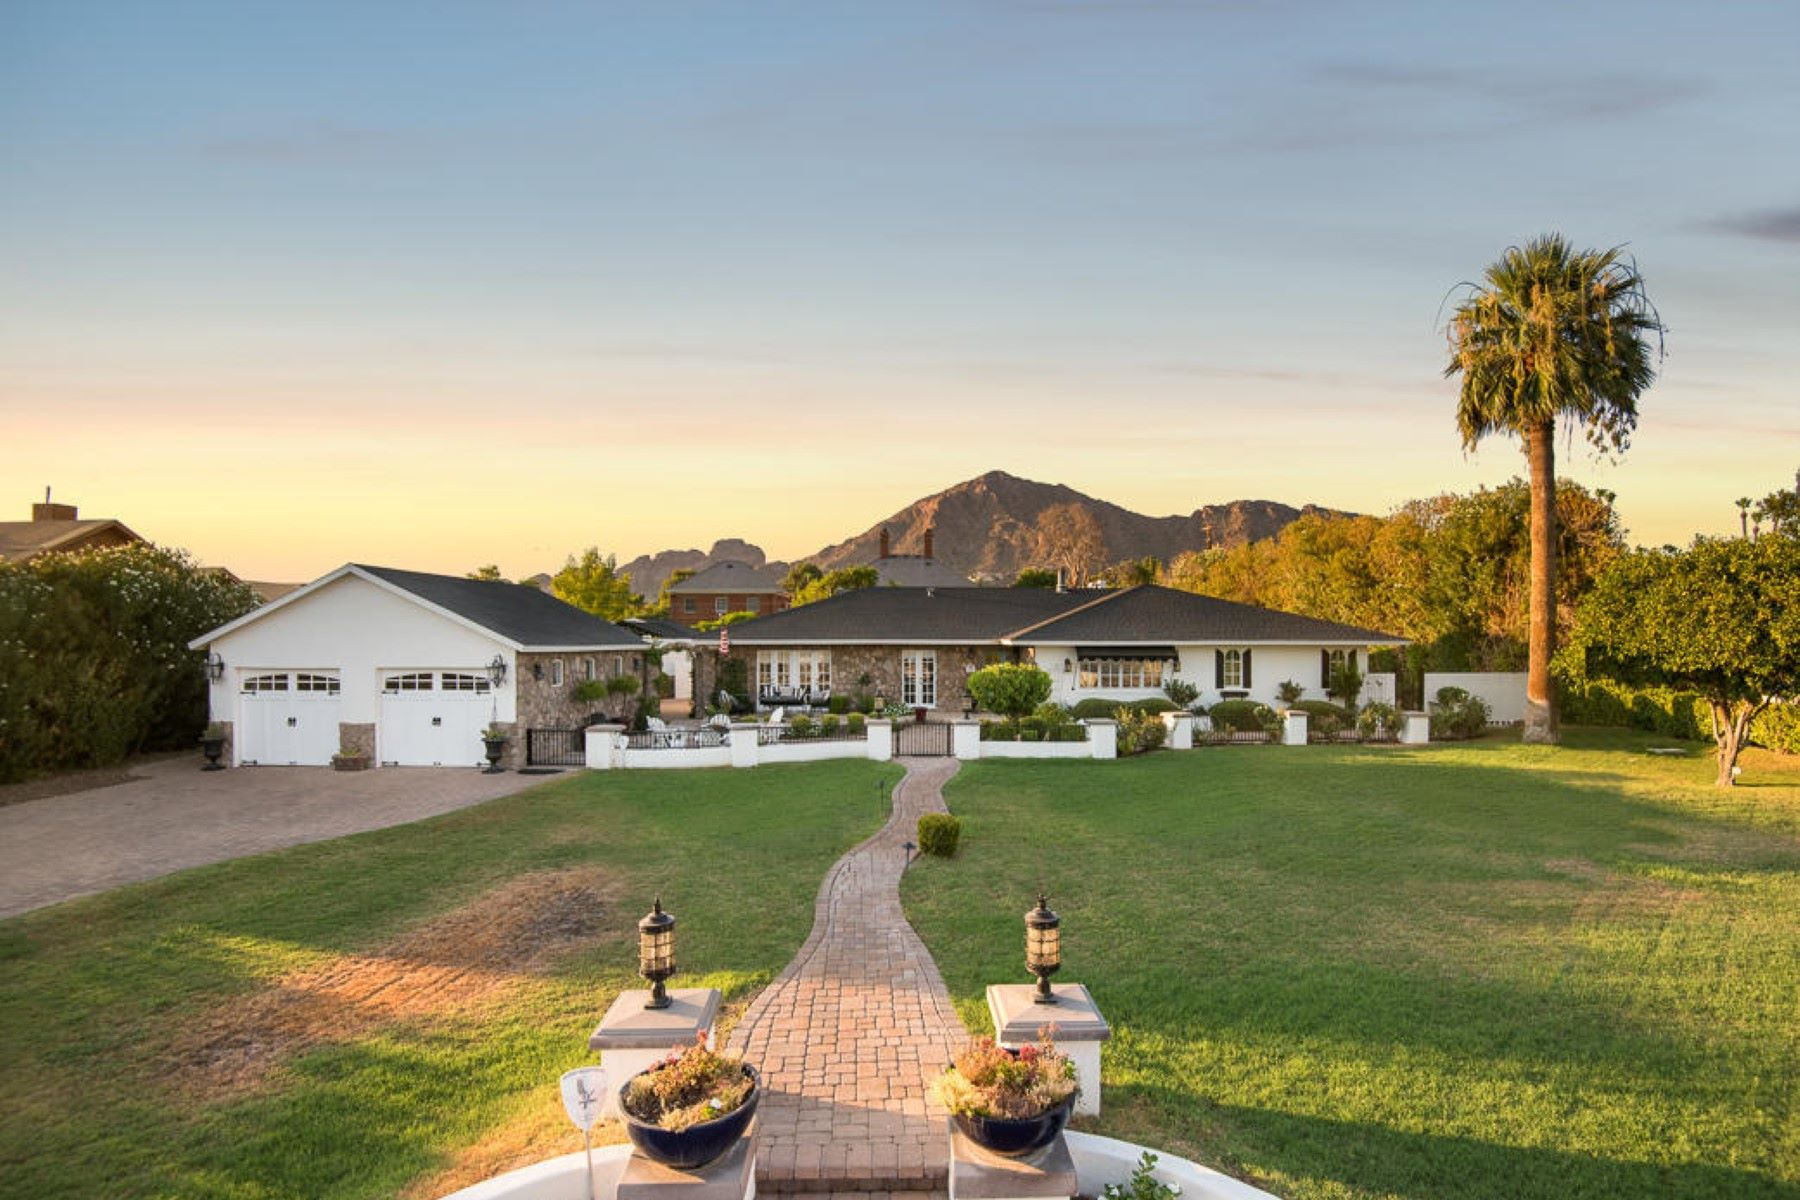 Single Family Home for Sale at Charming home on beautiful grounds in Phoenix 5424 E Lafayette Blvd Phoenix, Arizona, 85018 United States